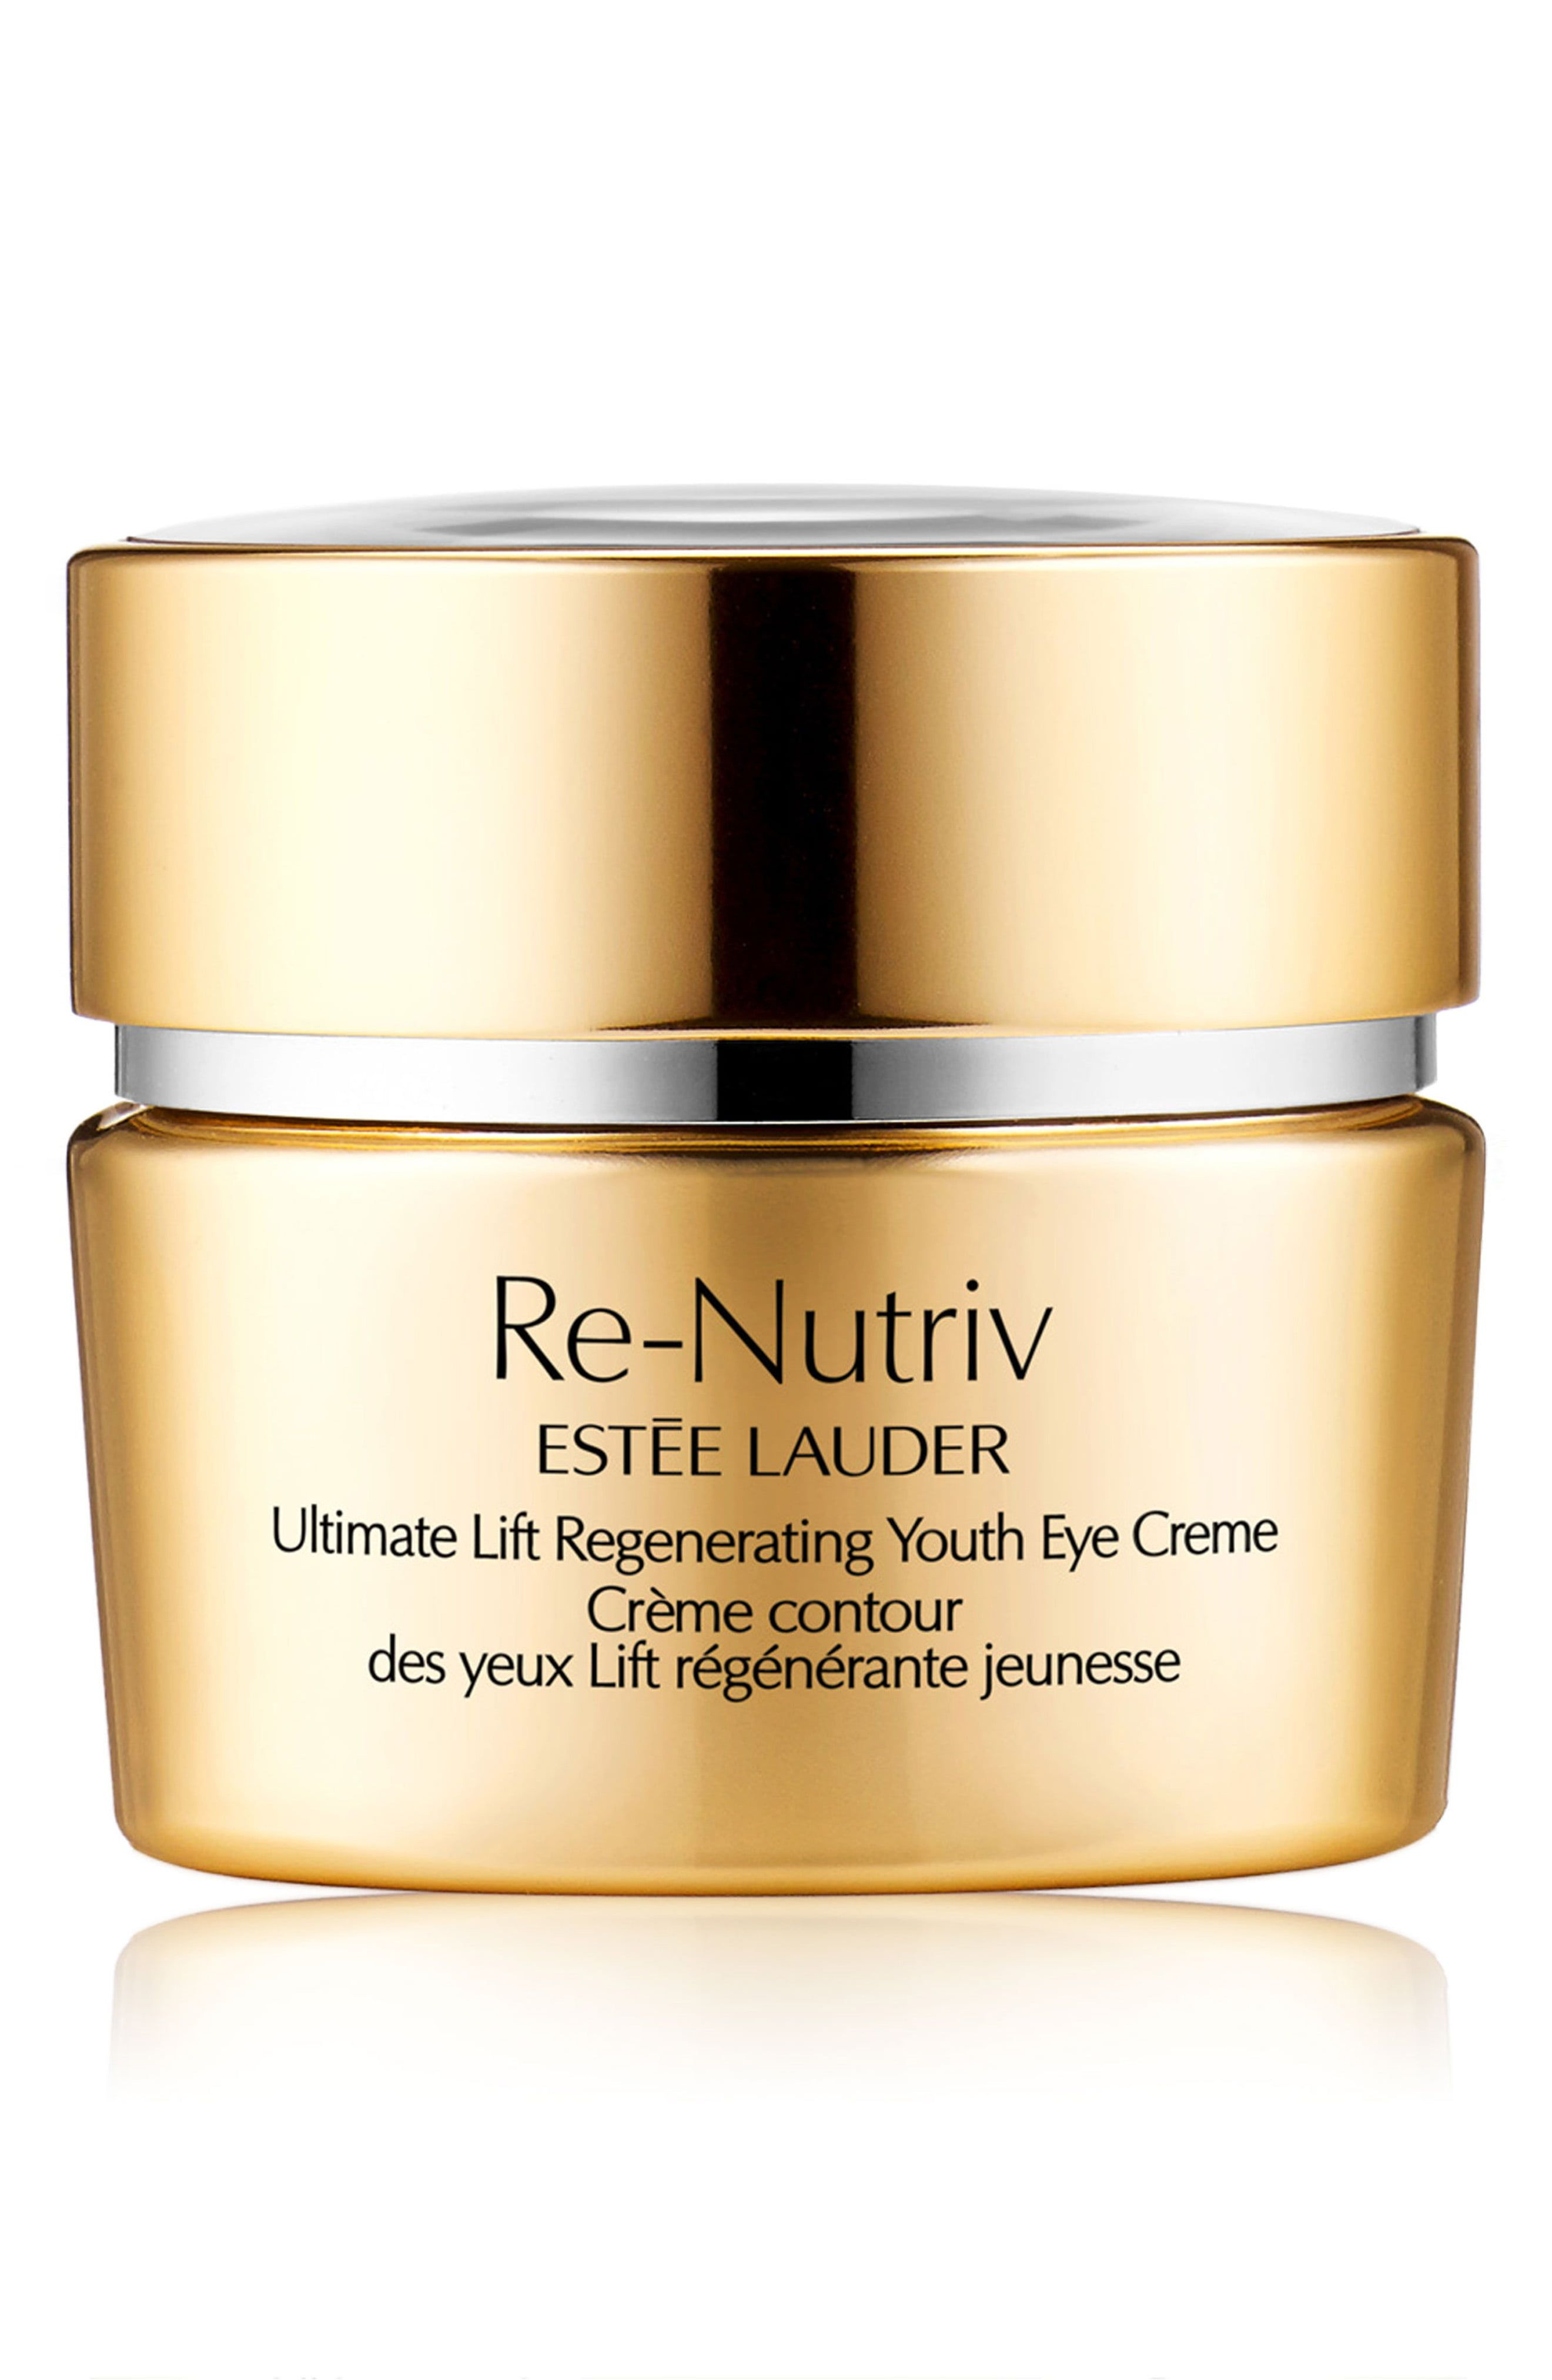 Estee Lauder Re Nutriv Ultimate Lift Regenerating Youth Eye Creme Estee Lauder Bath Body Body Treatments